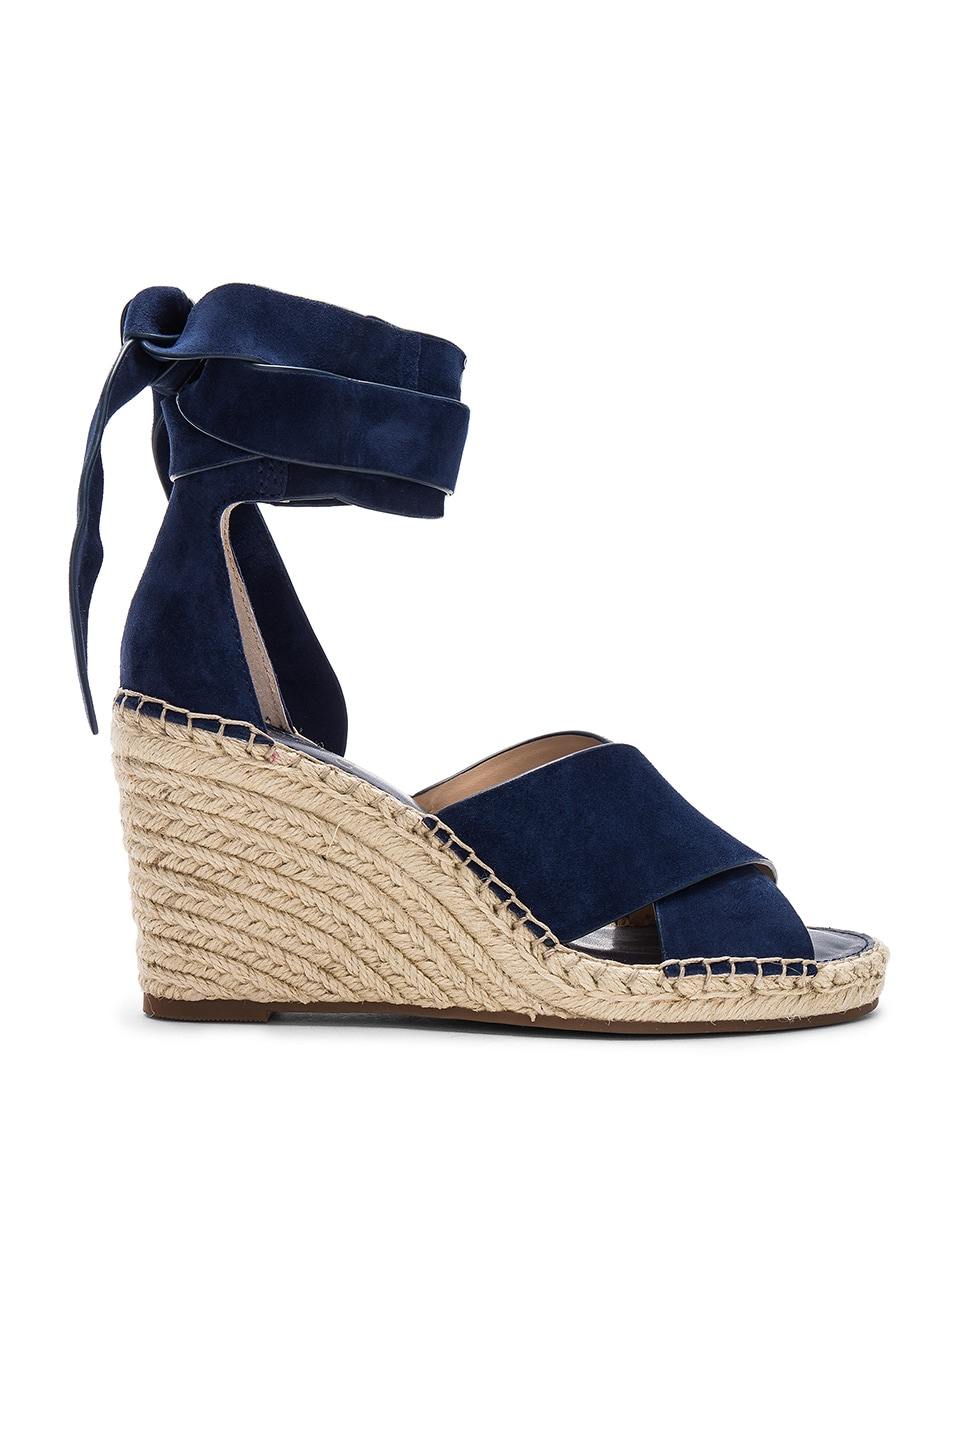 Vince Camuto Leddy Wedge in Midnight Suede